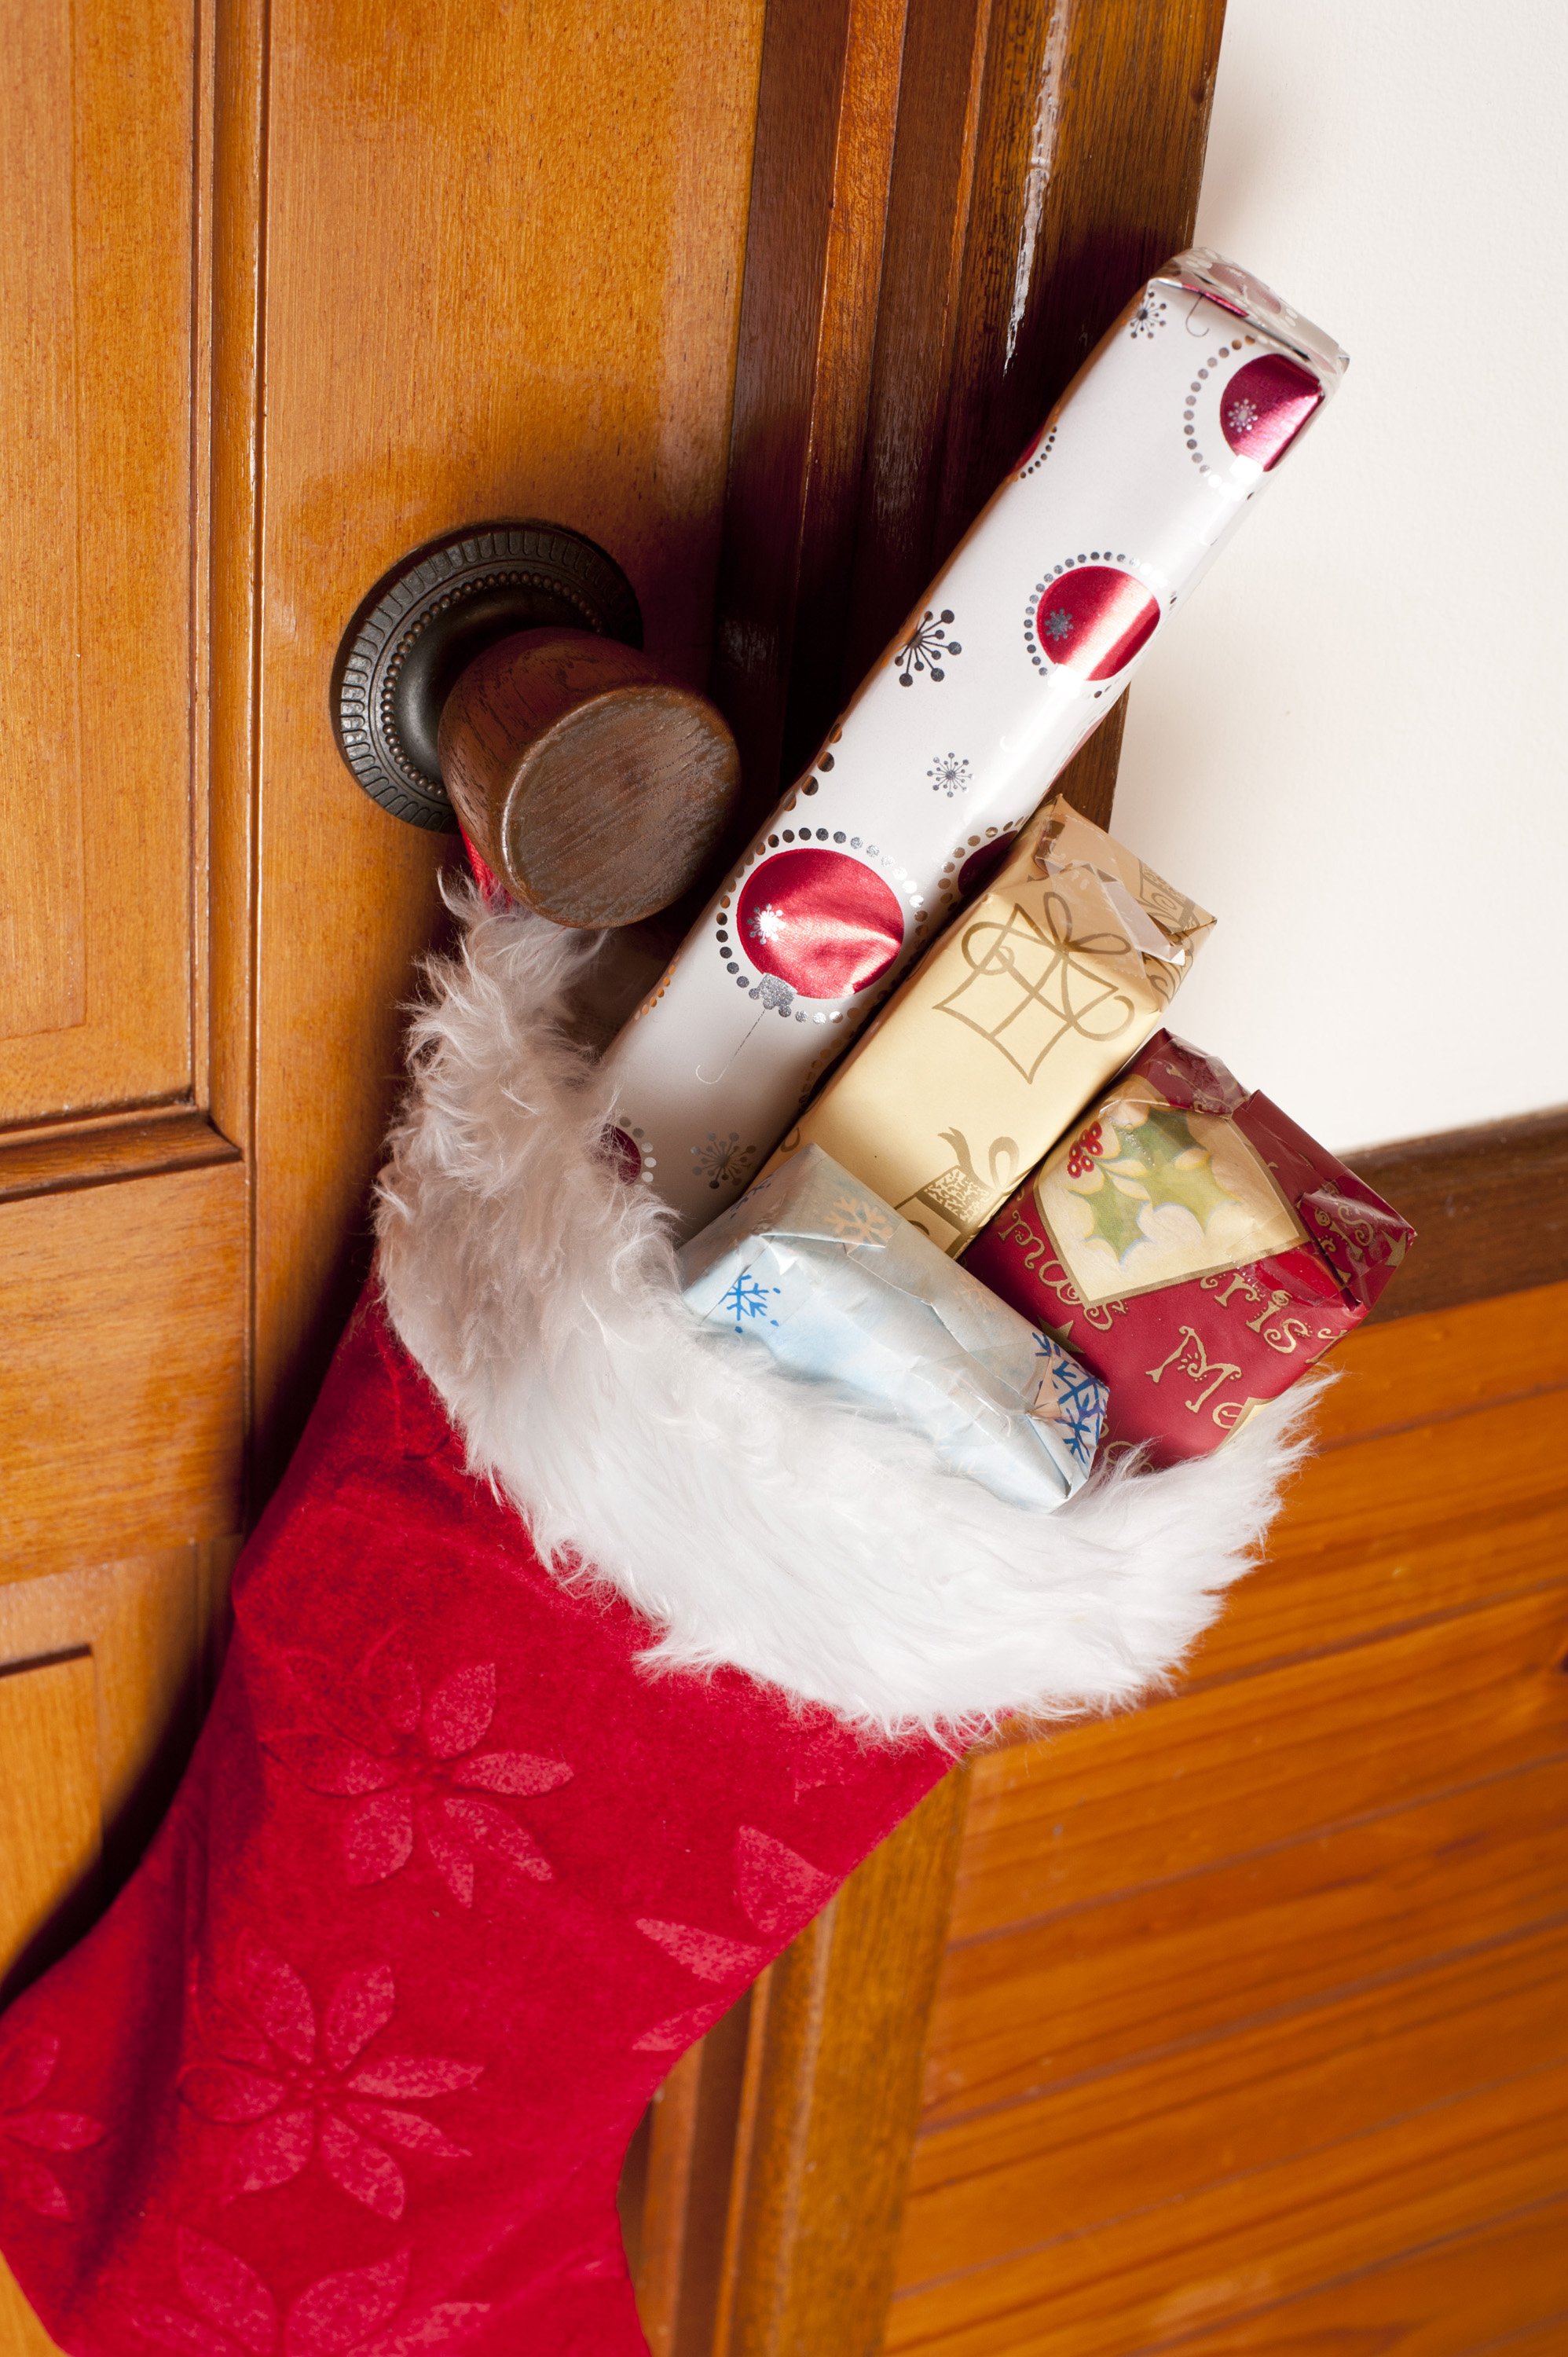 Colorful Christmas gifts filling a red stocking hanging from a wooden door in a close up view with copy space